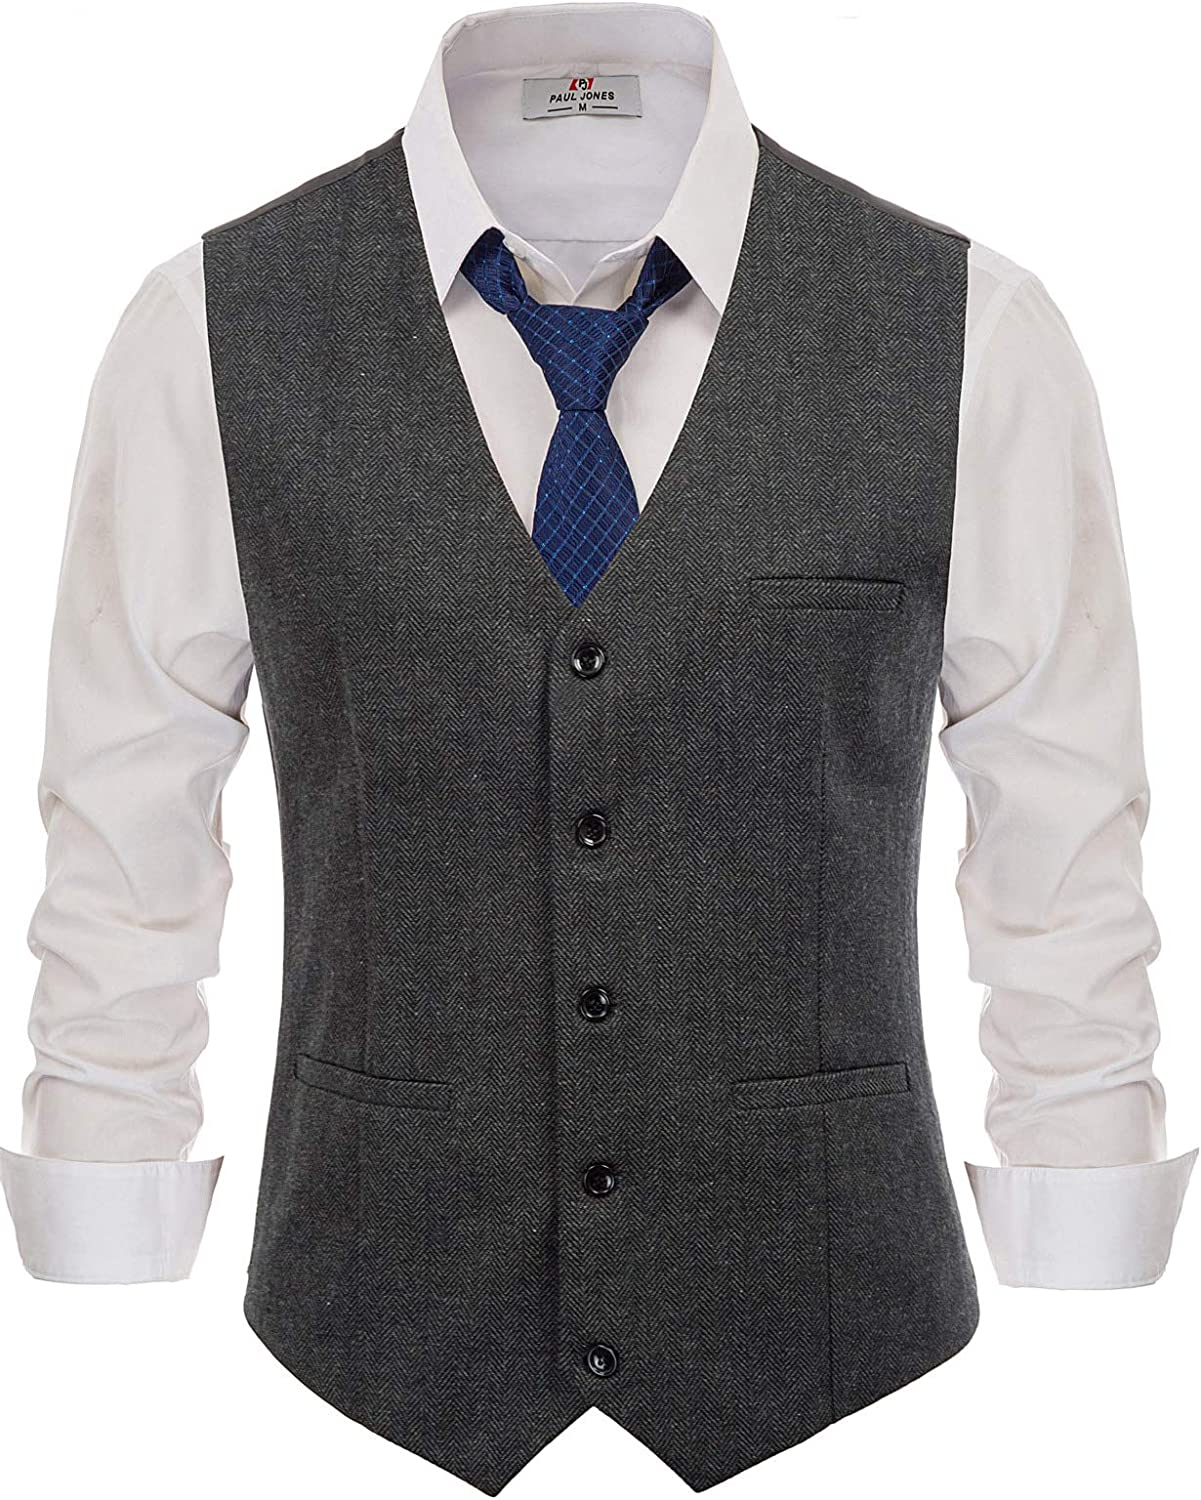 1940s UK and Europe Men's Clothing – WW2, Swing Dance, Goodwin PaulJones Mens Business Sleeveless Lapel Collar 4-Buttons Suit Vest £24.99 AT vintagedancer.com